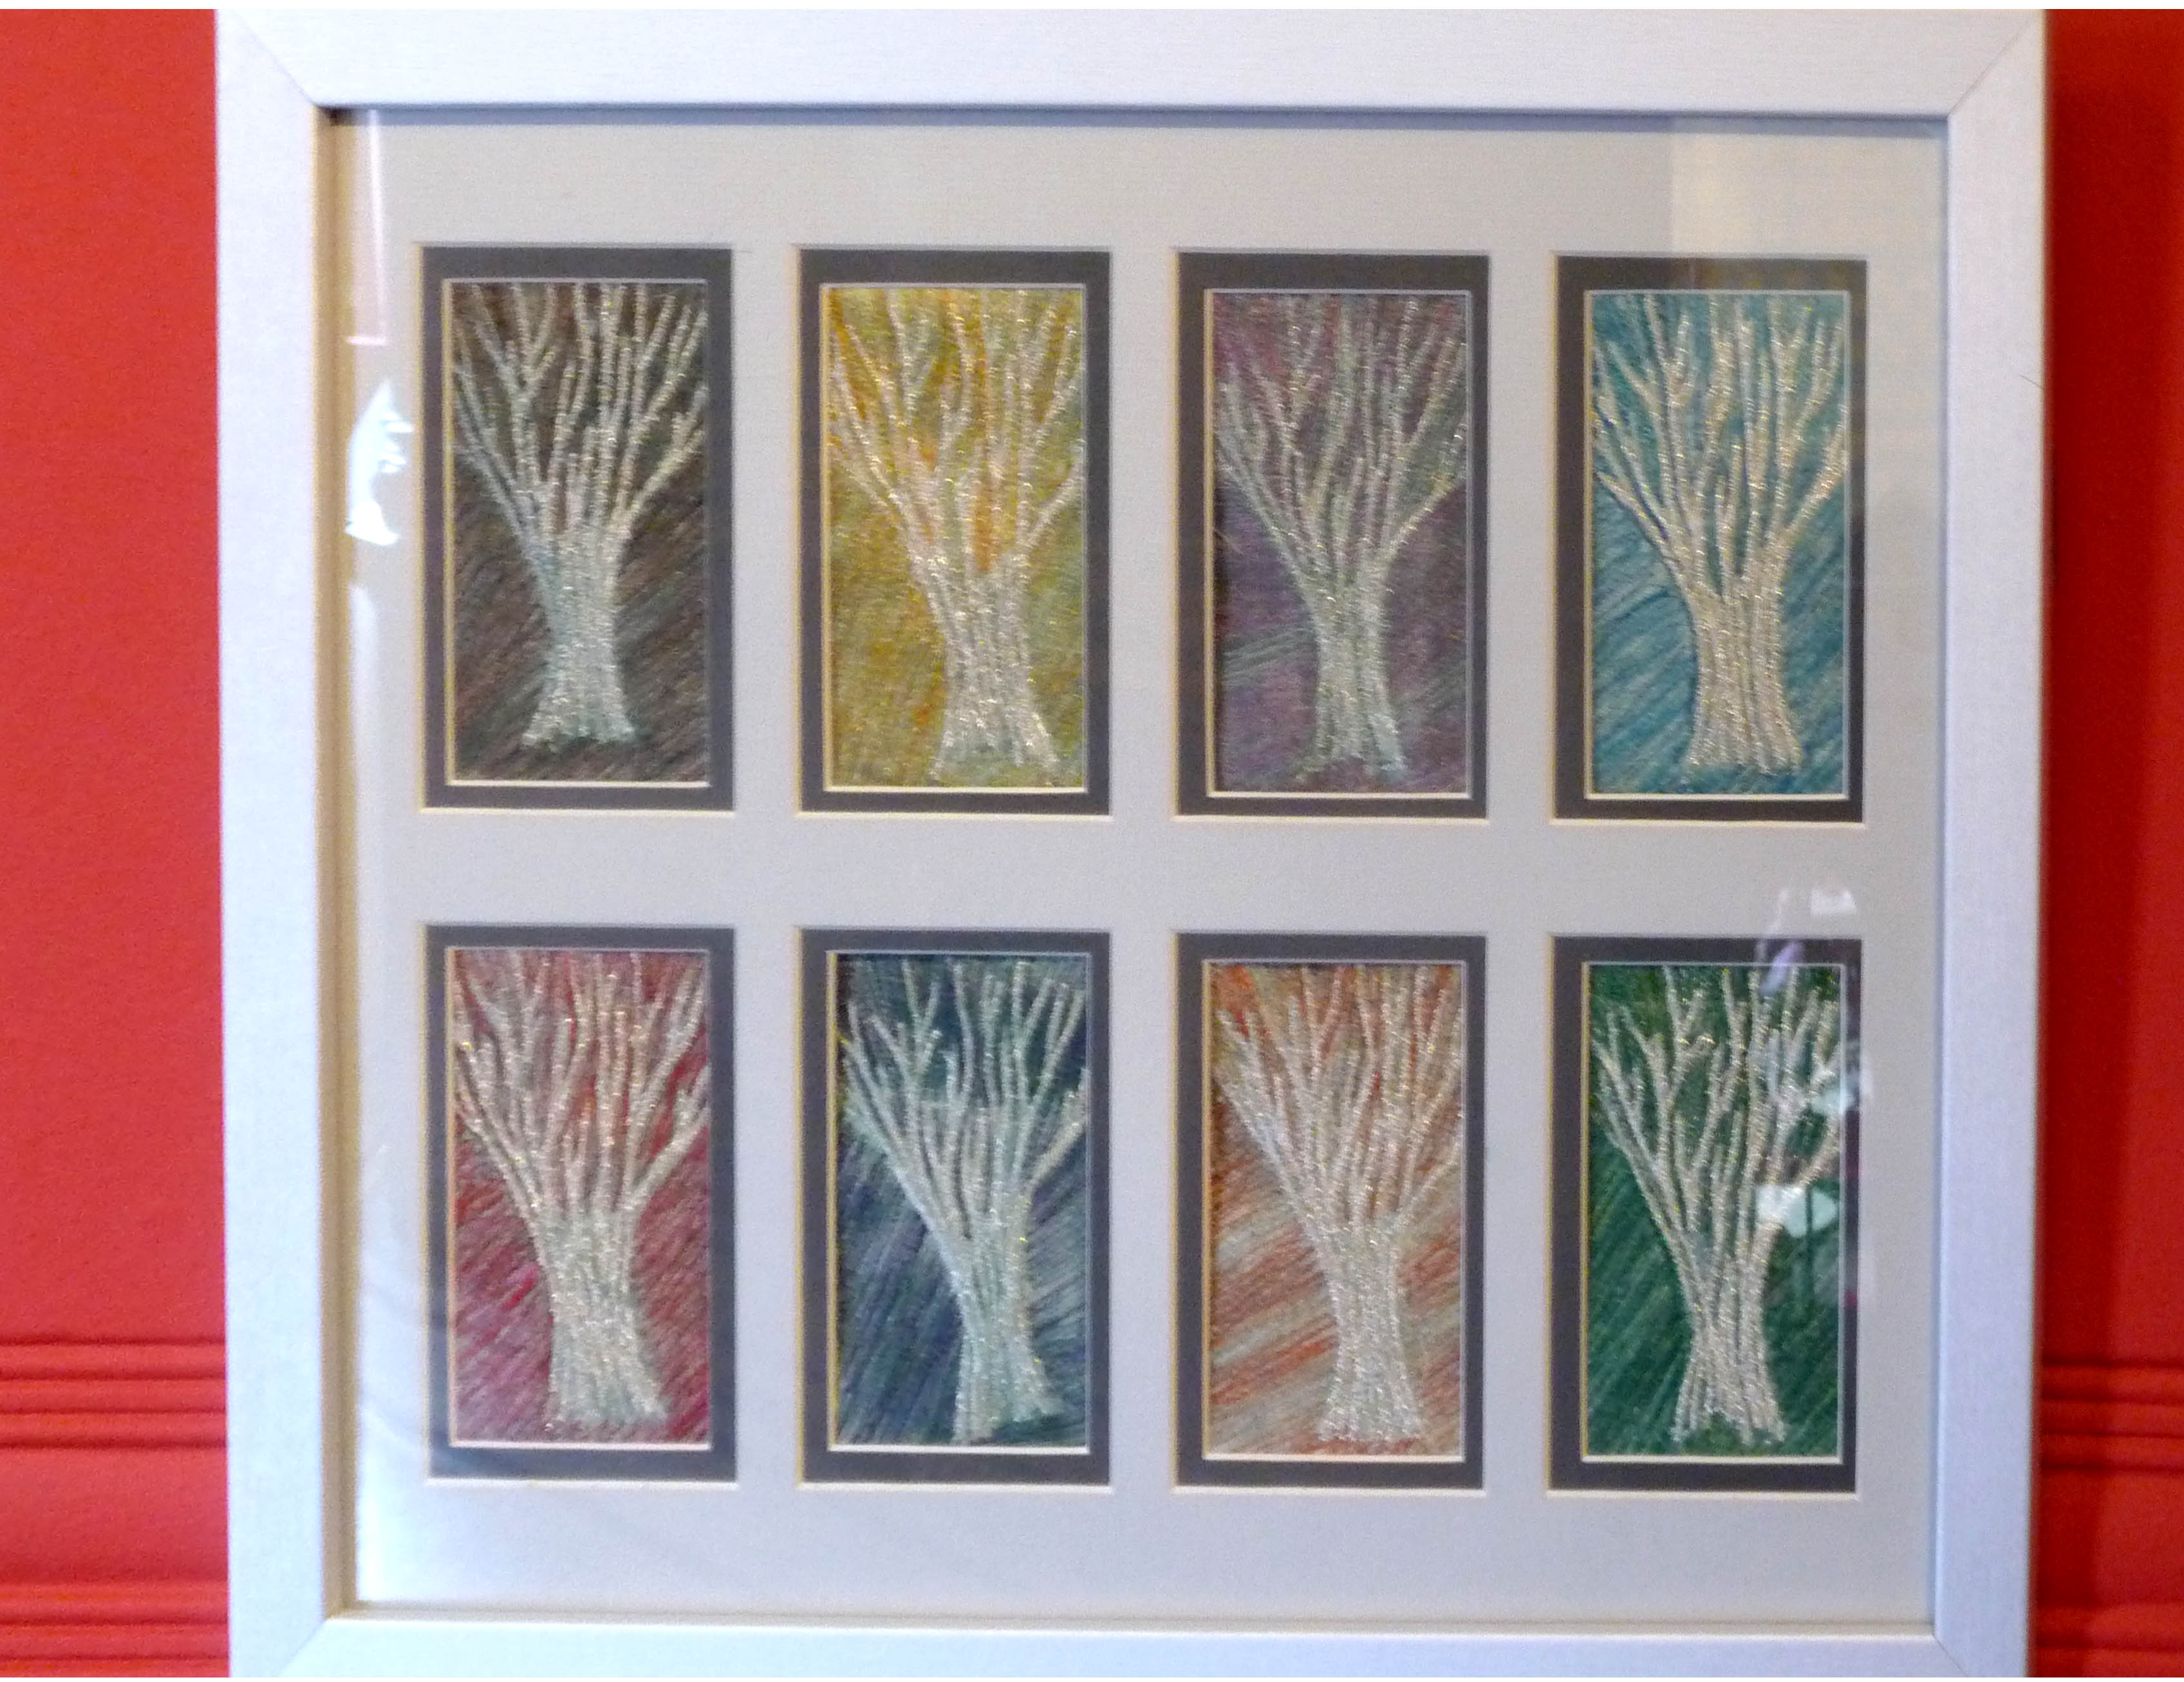 TREES-A STUDY OF COLOUR, 2013, by Gill Roberts, hand stitching